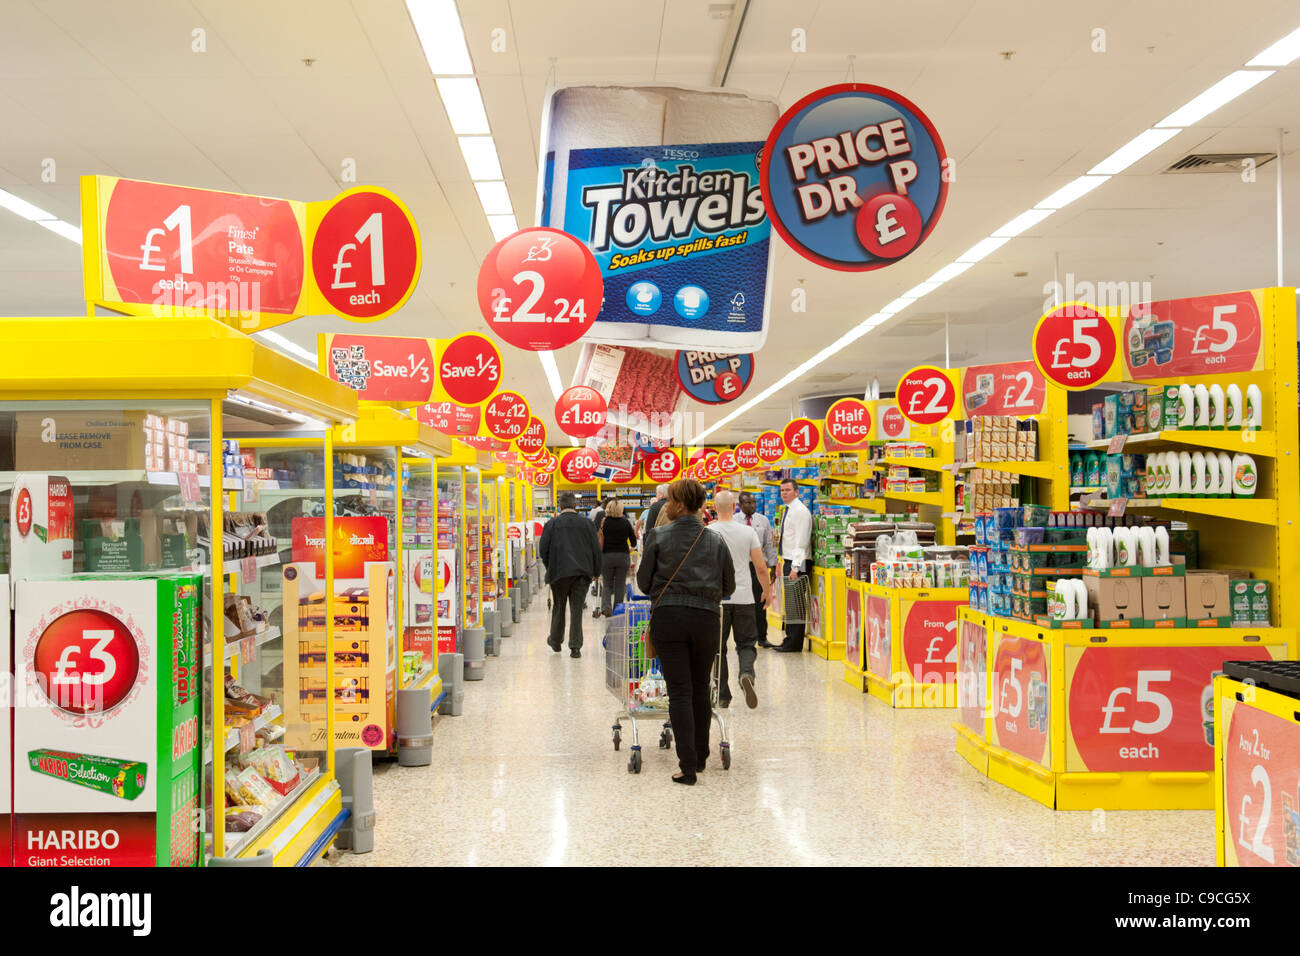 tesco marketing orientation Market orientation is a company's alignment of strategies with business intelligence derived from assessing customer needs and competitor data market orientation involves generating.